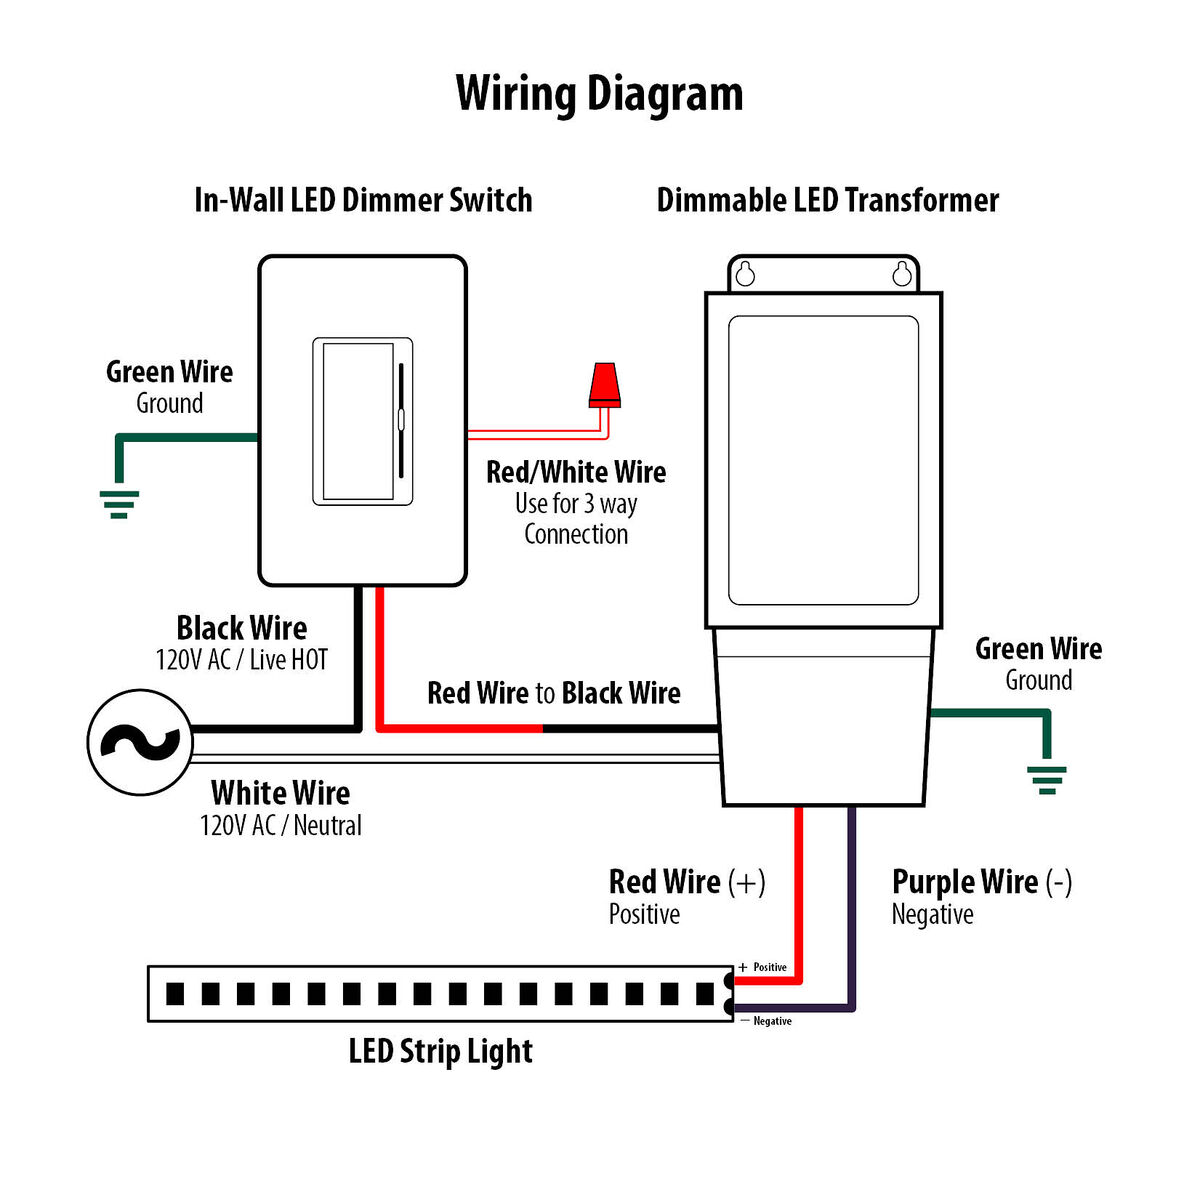 3 Way Led Dimmer Switch Wiring Diagram